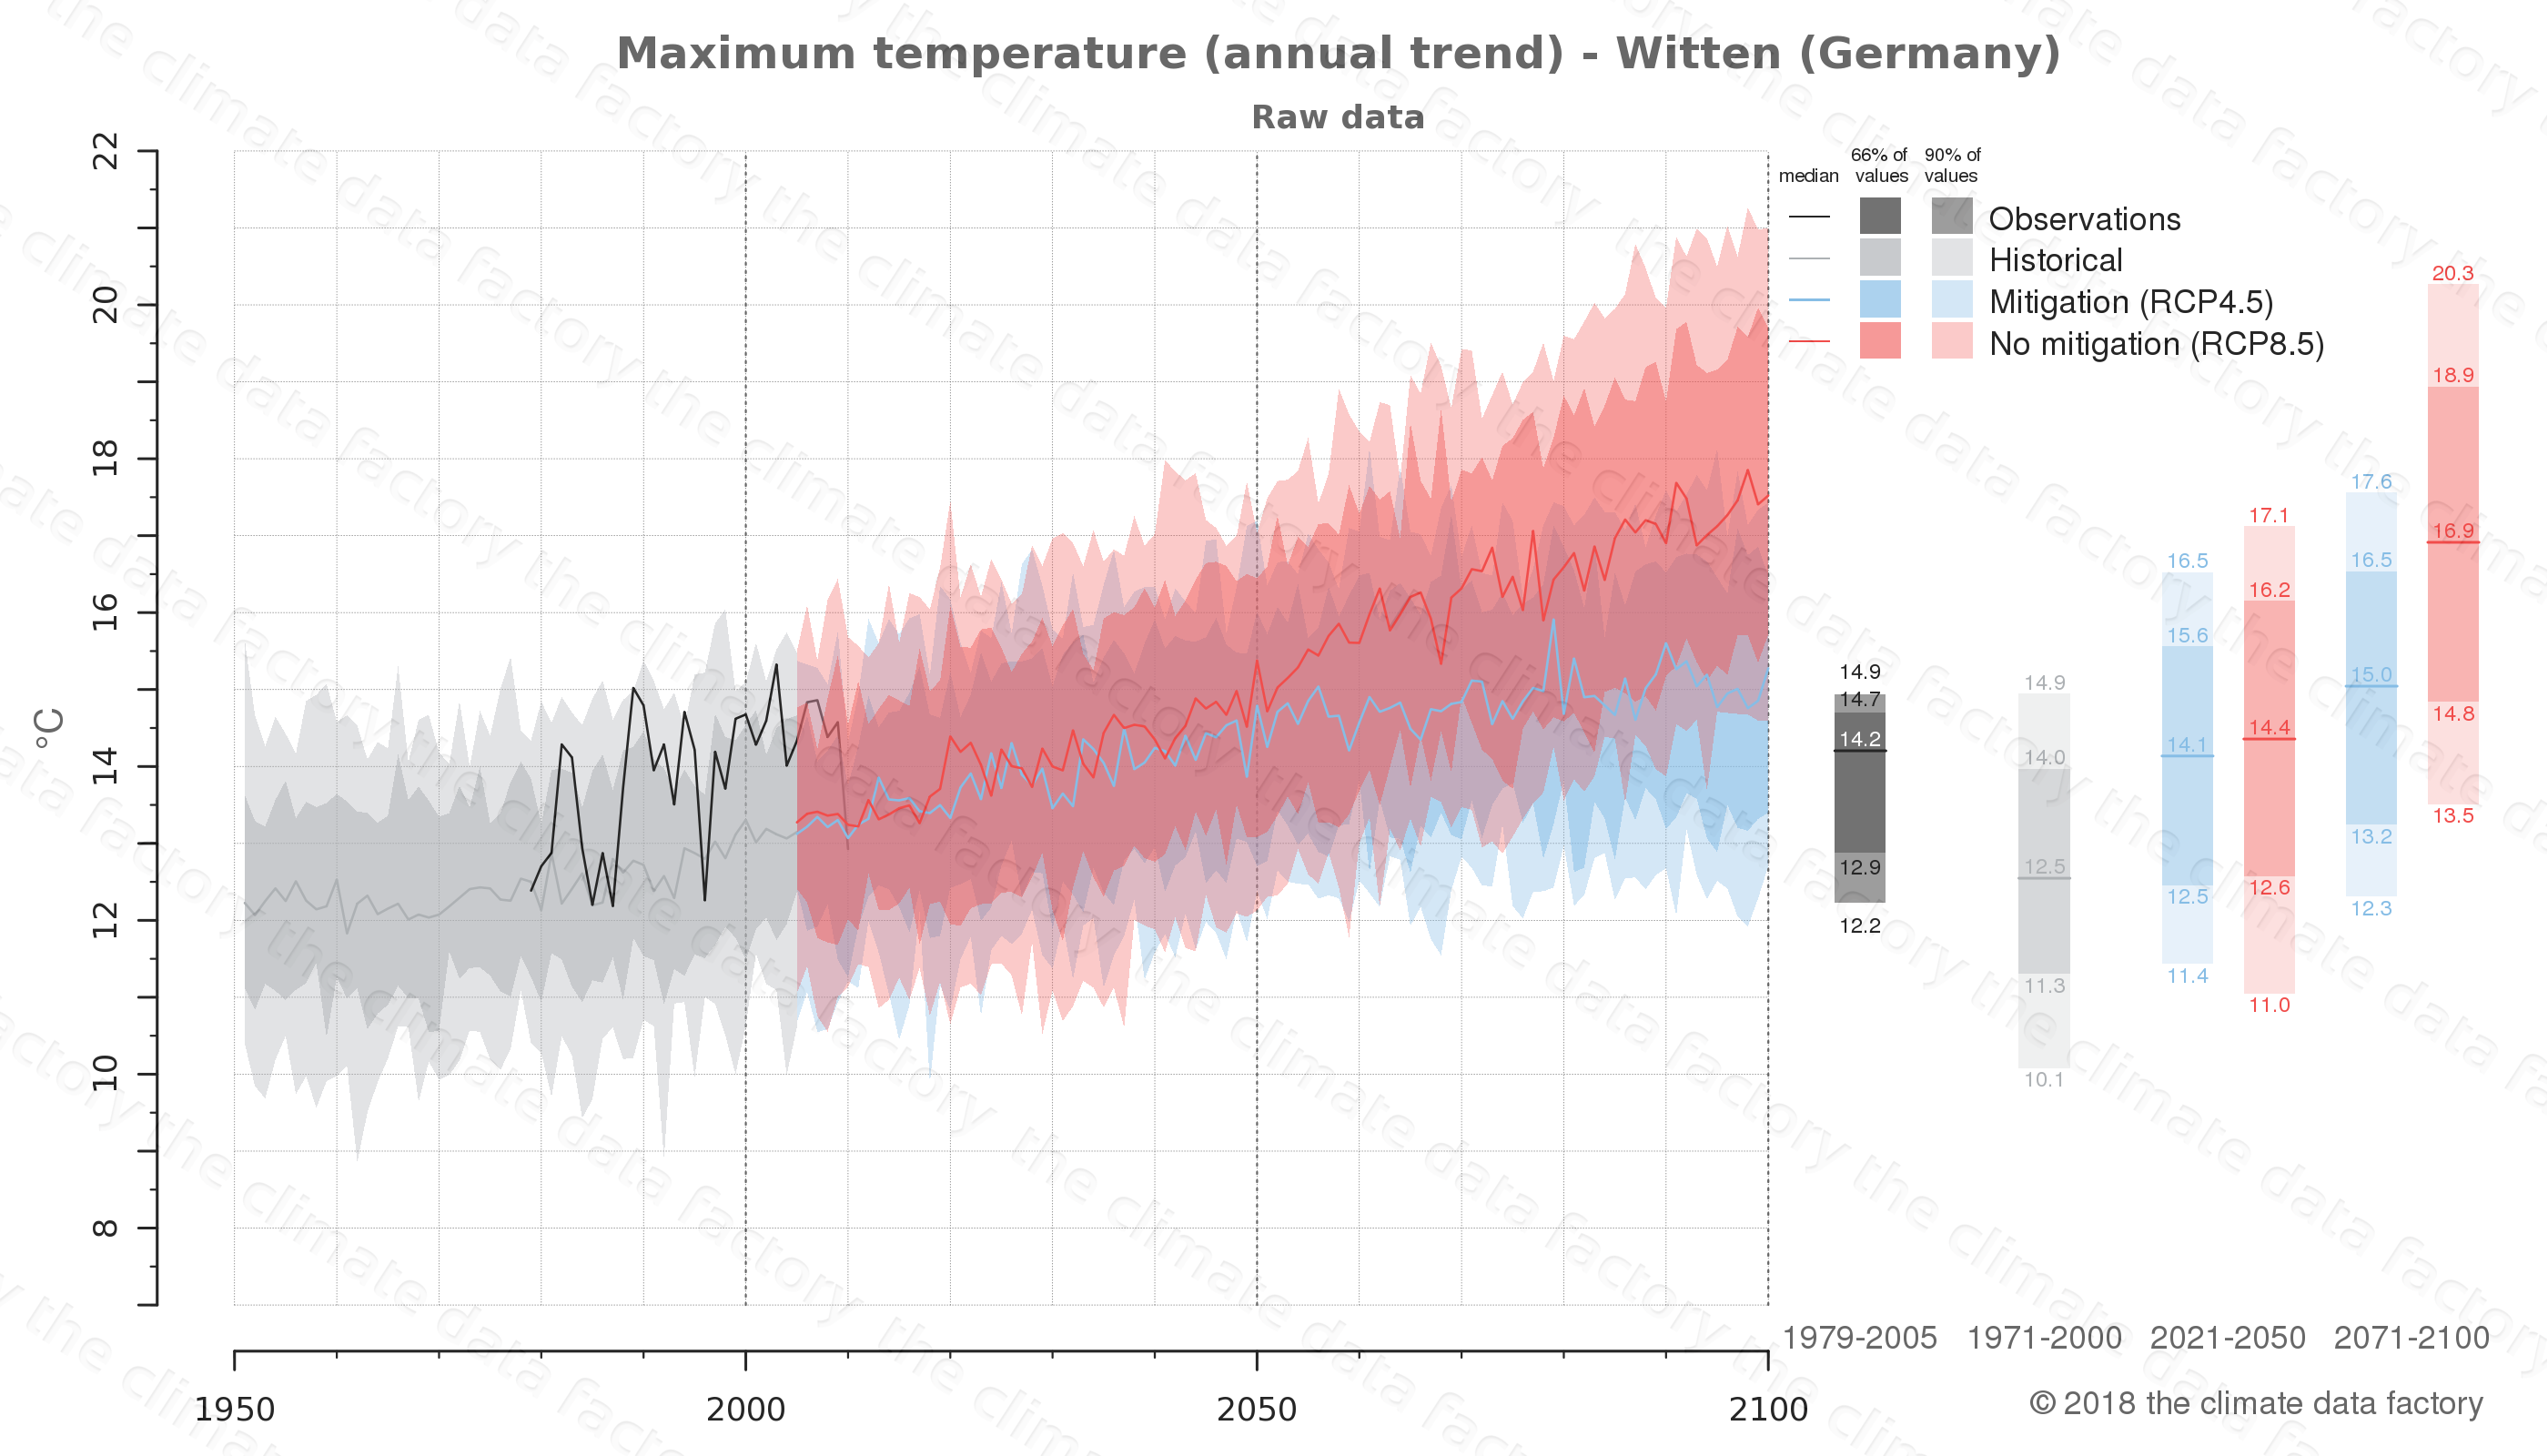 climate change data policy adaptation climate graph city data maximum-temperature witten germany